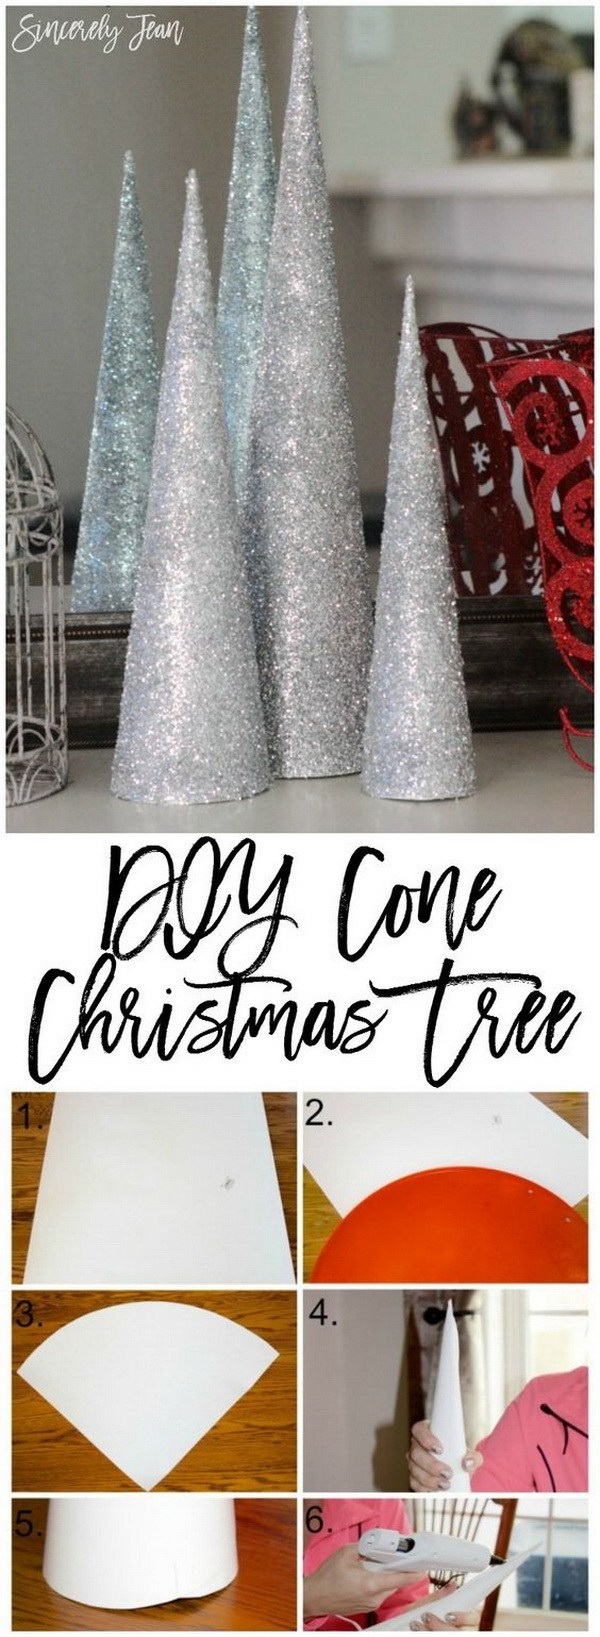 DIY Cone Christmas Tree. A simple and beautiful Christmas craft that is so easy and fun to make, even for kids!